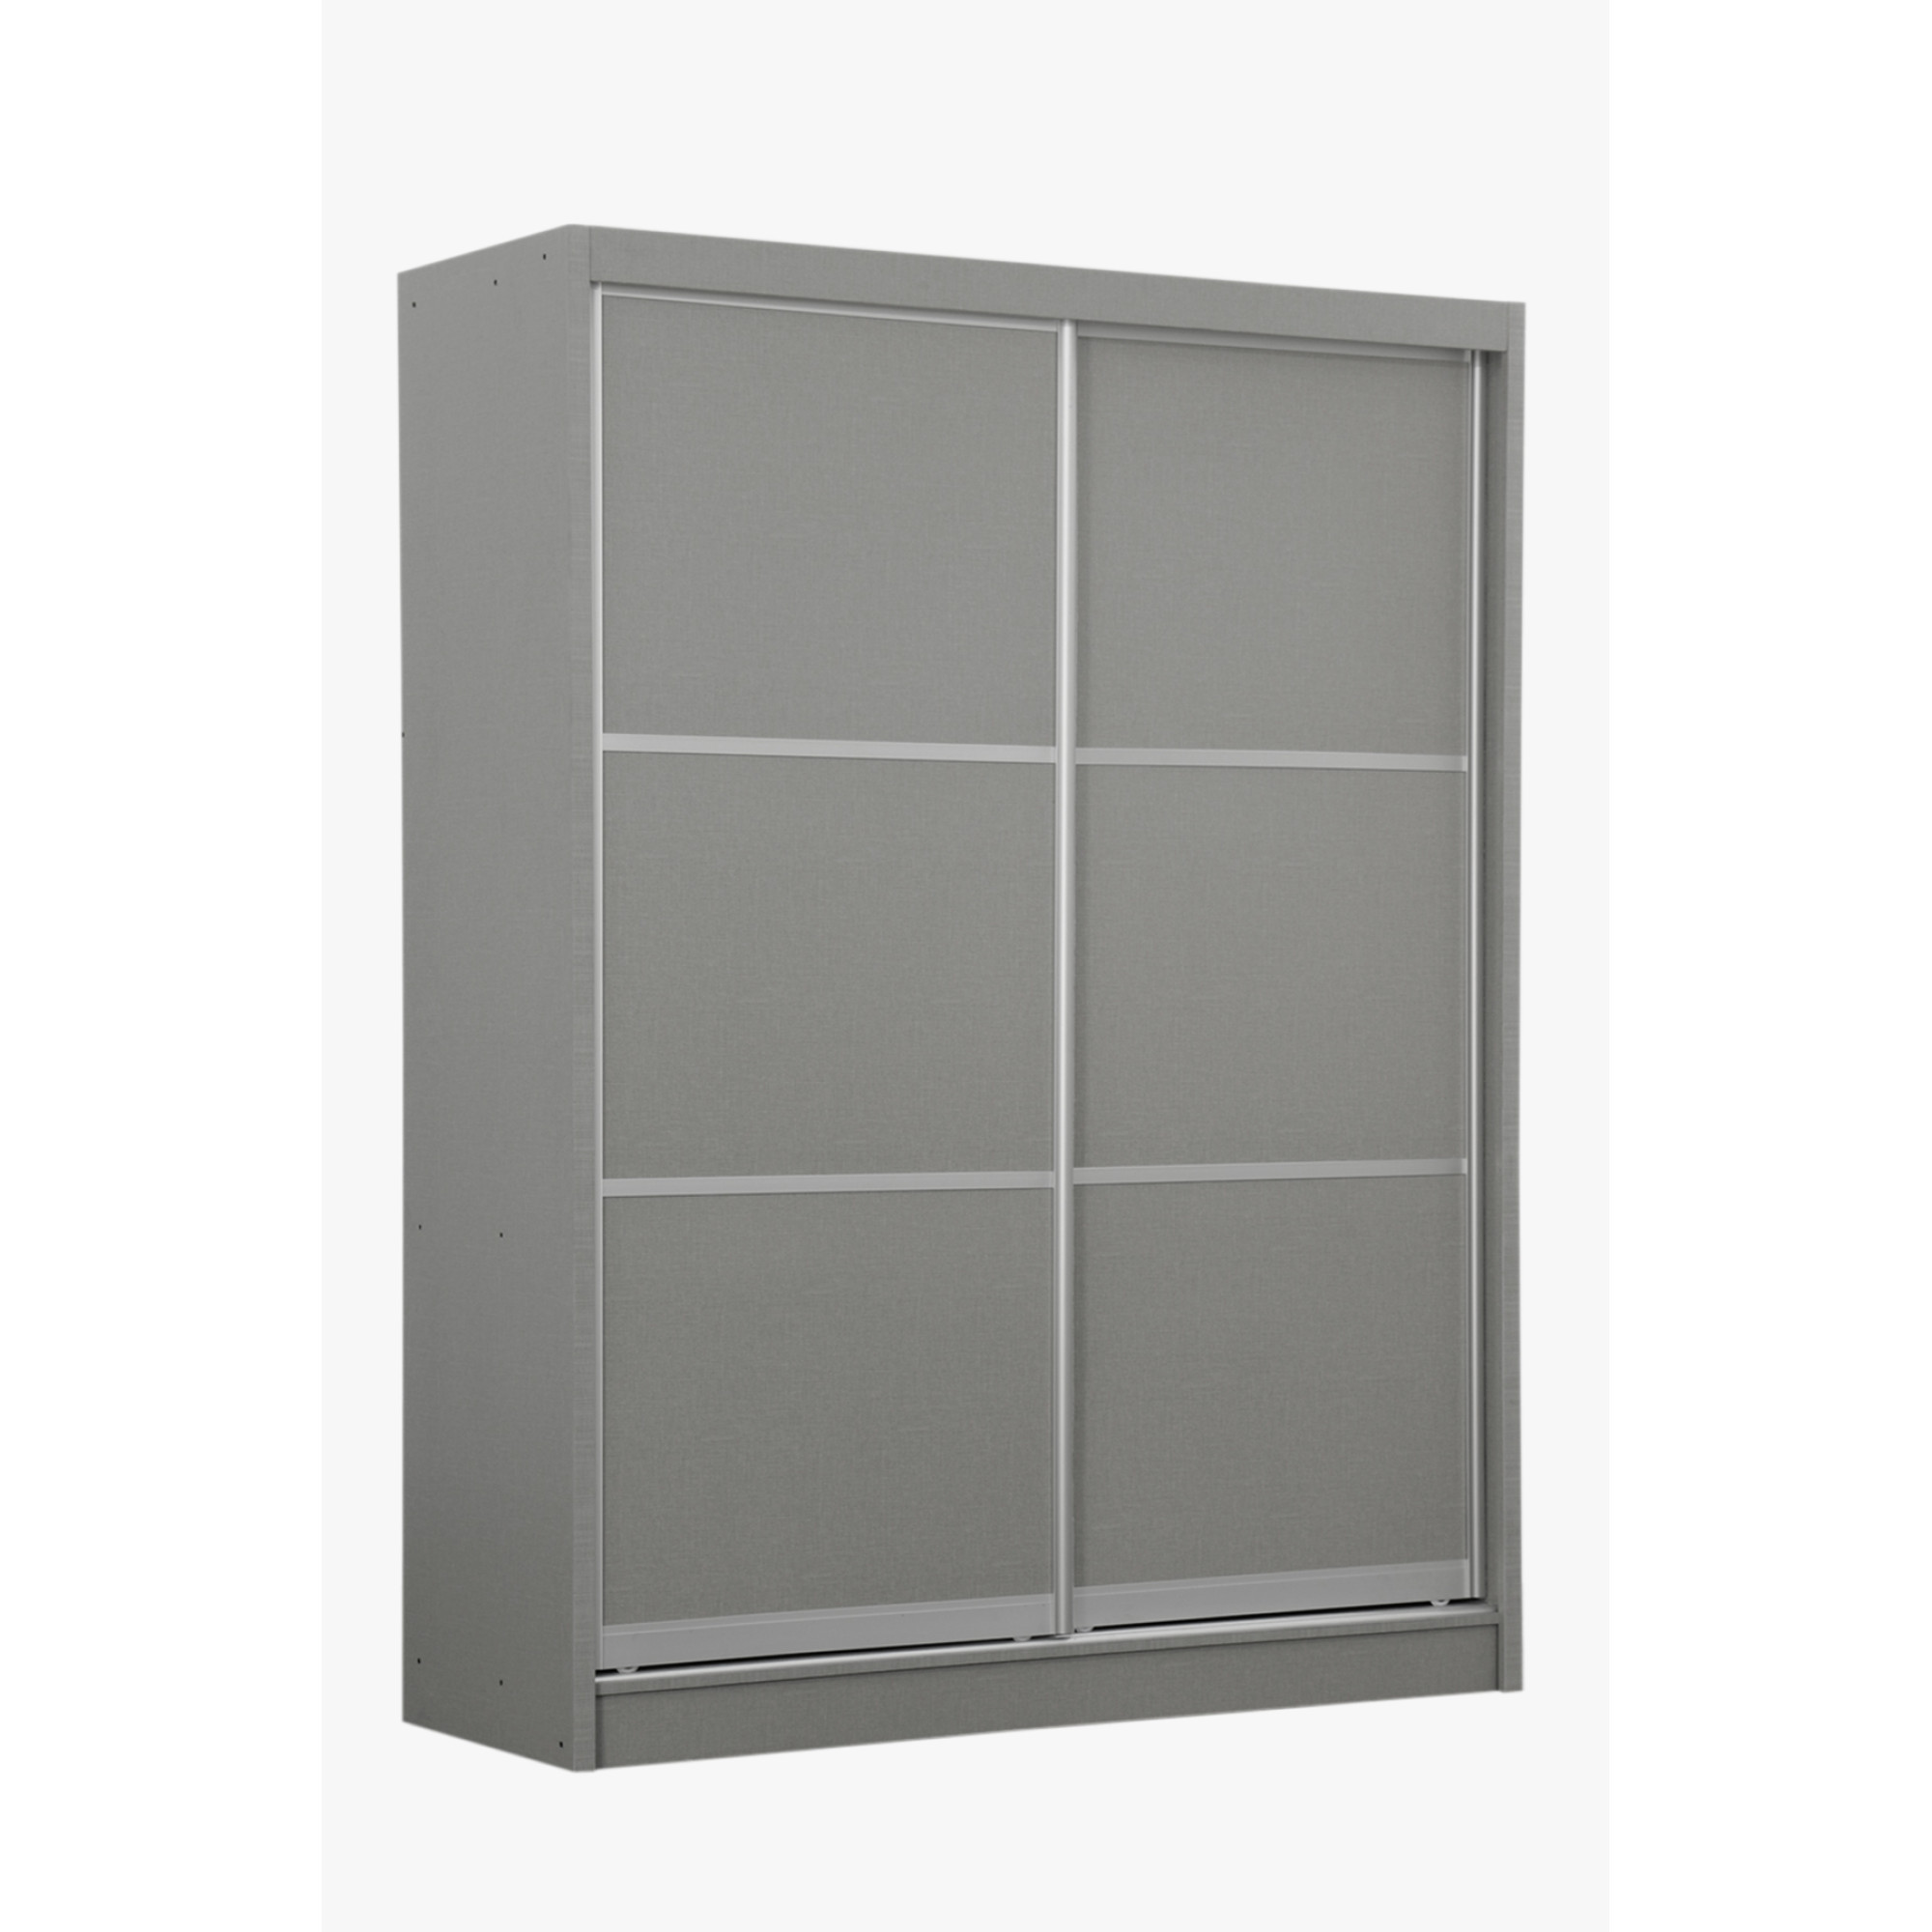 wardrobe pax armoire ikea oak ker stained effect grey meraker configurateur white mer